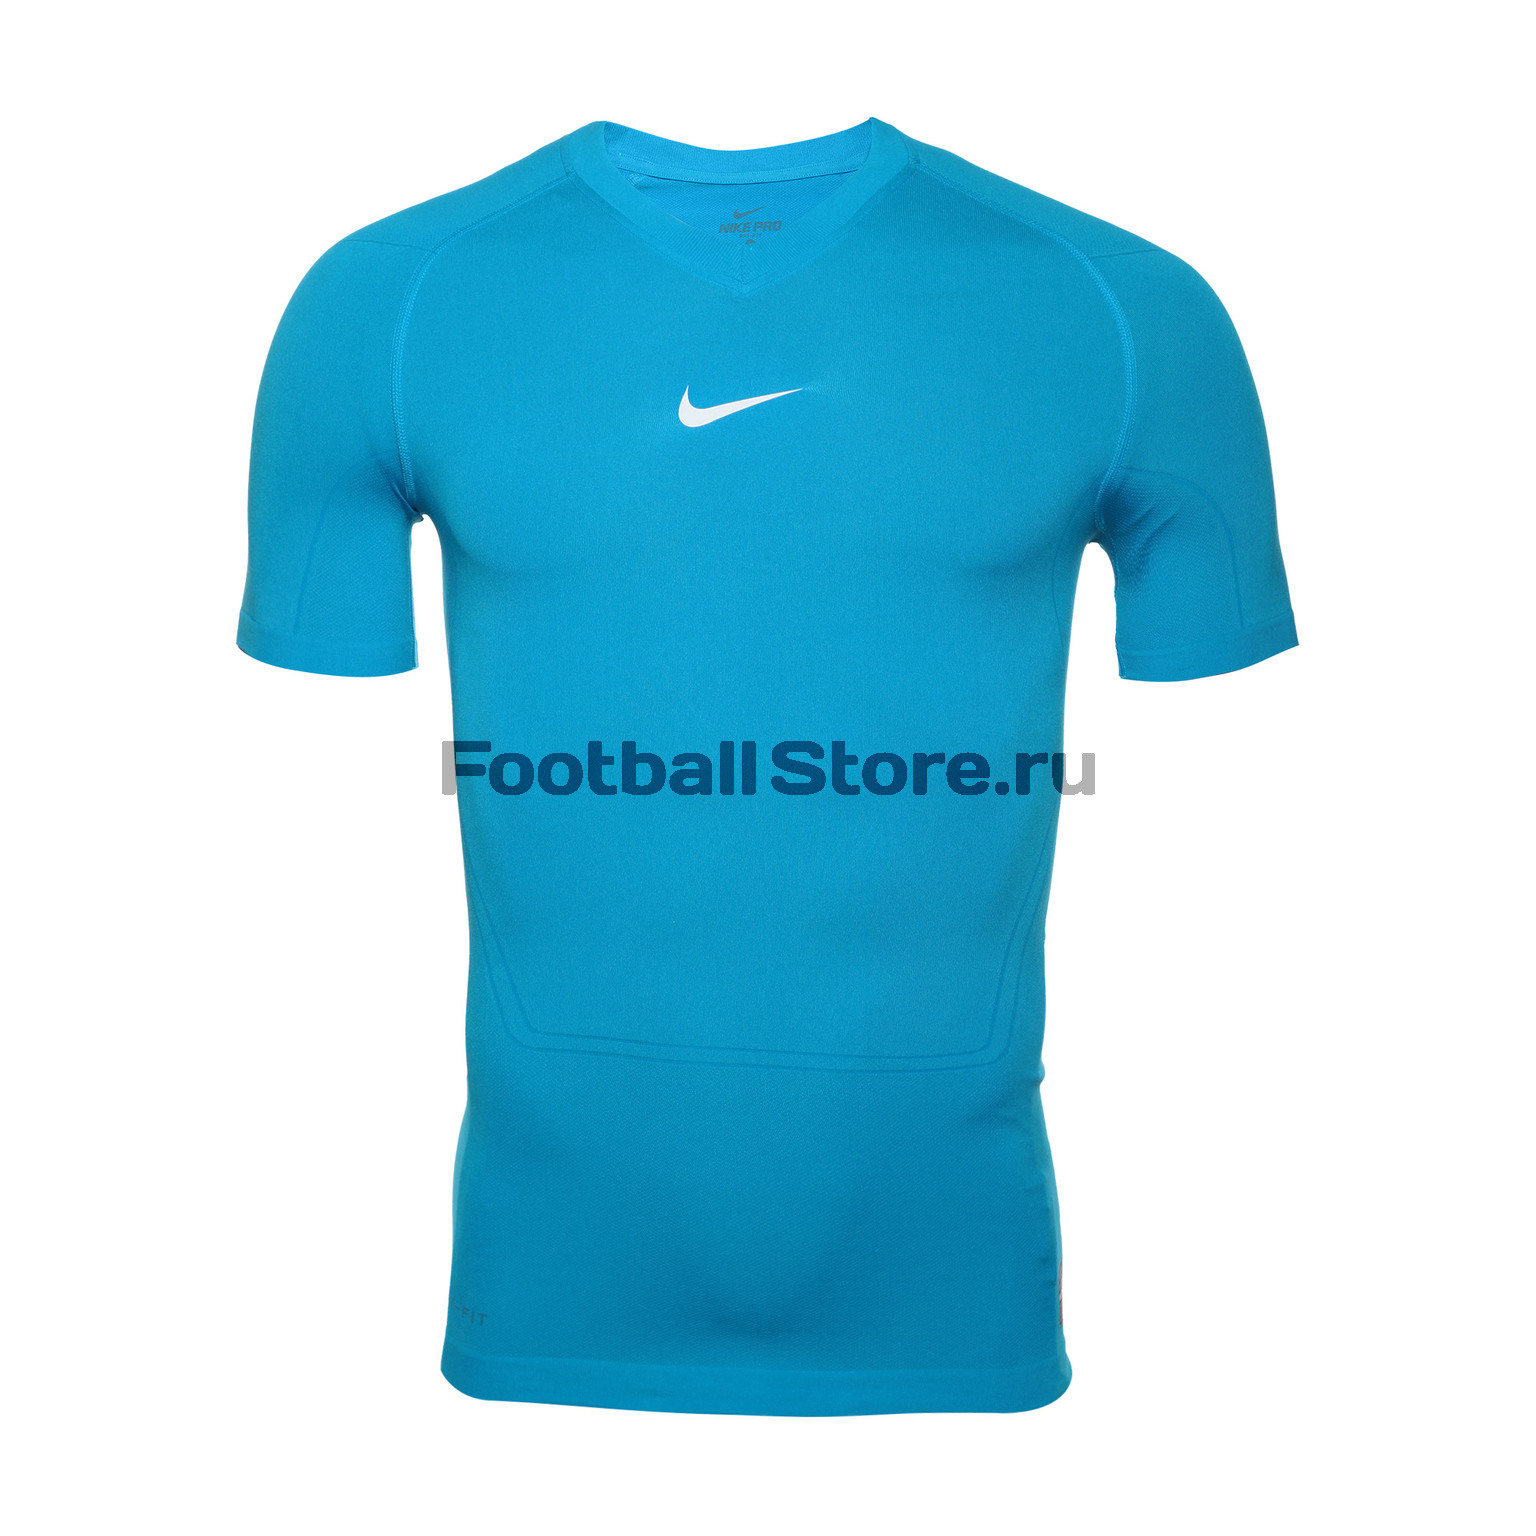 Белье футболка Nike SS Top 613861-498 nike футболка для мальчика nike df cool ss top yth nike